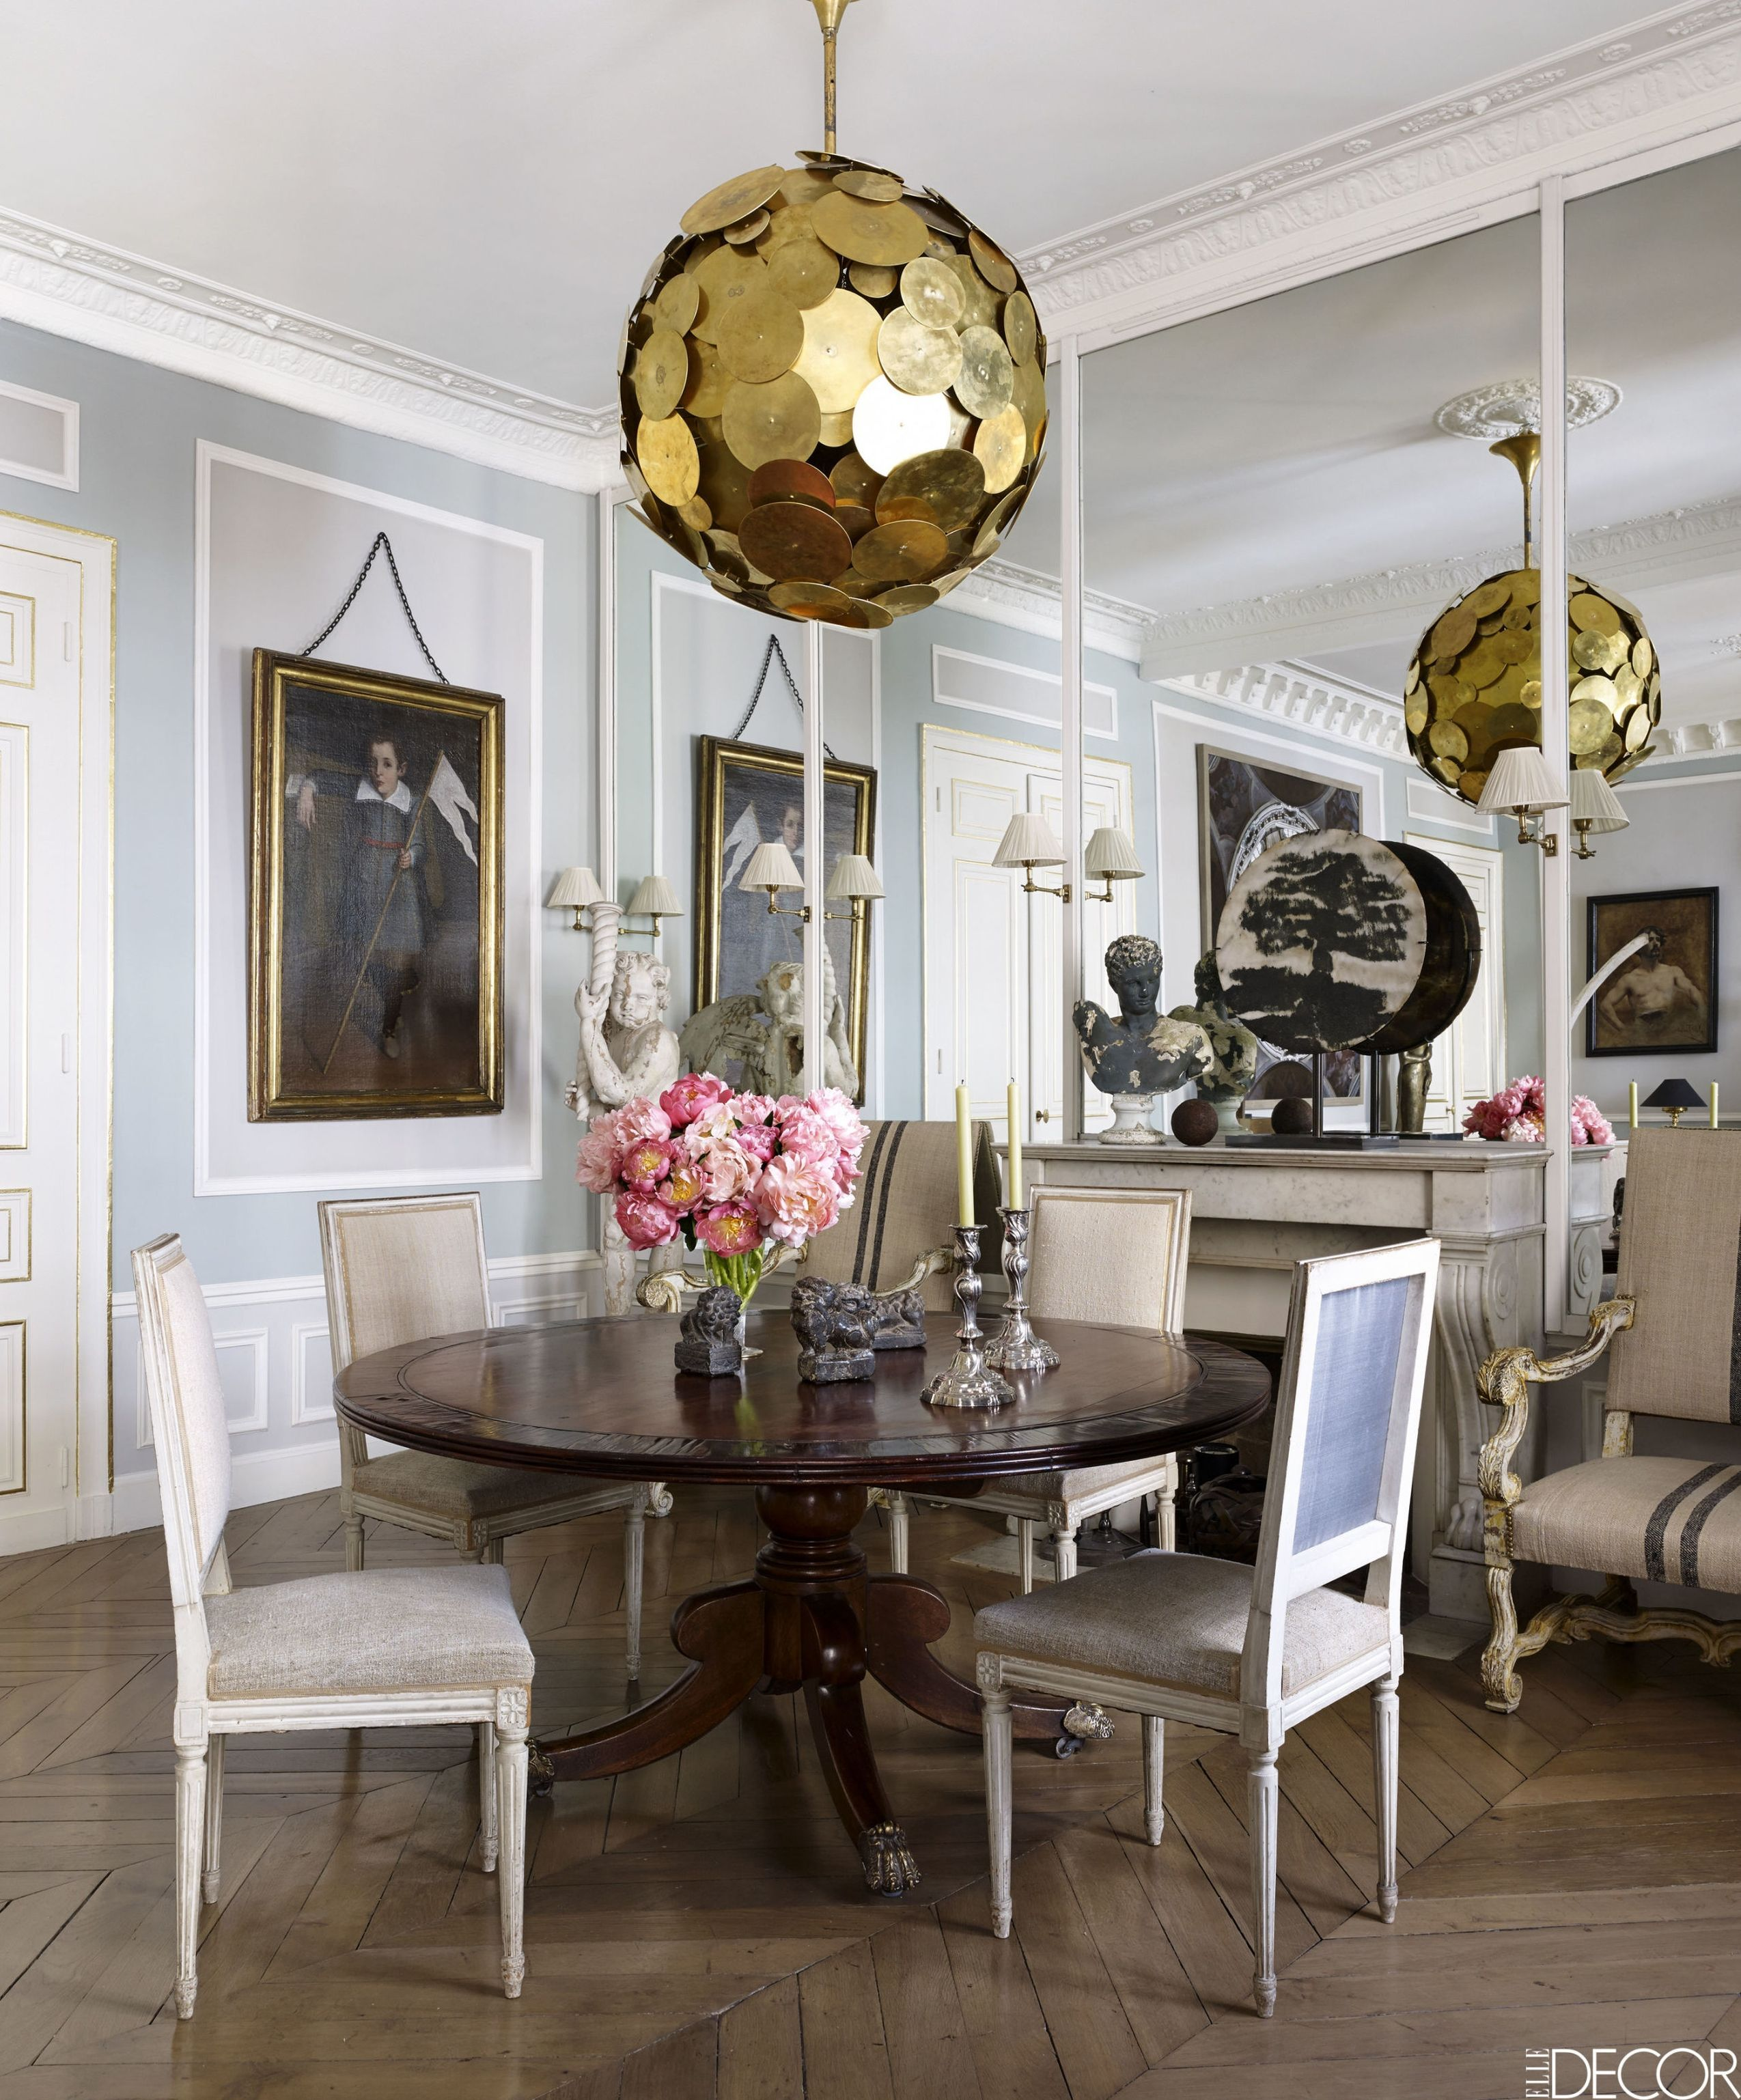 The Parisian Dining Room   Dining room french, Elegant ... on Living Room Wall Sconce Ideas For Dining Area id=68846